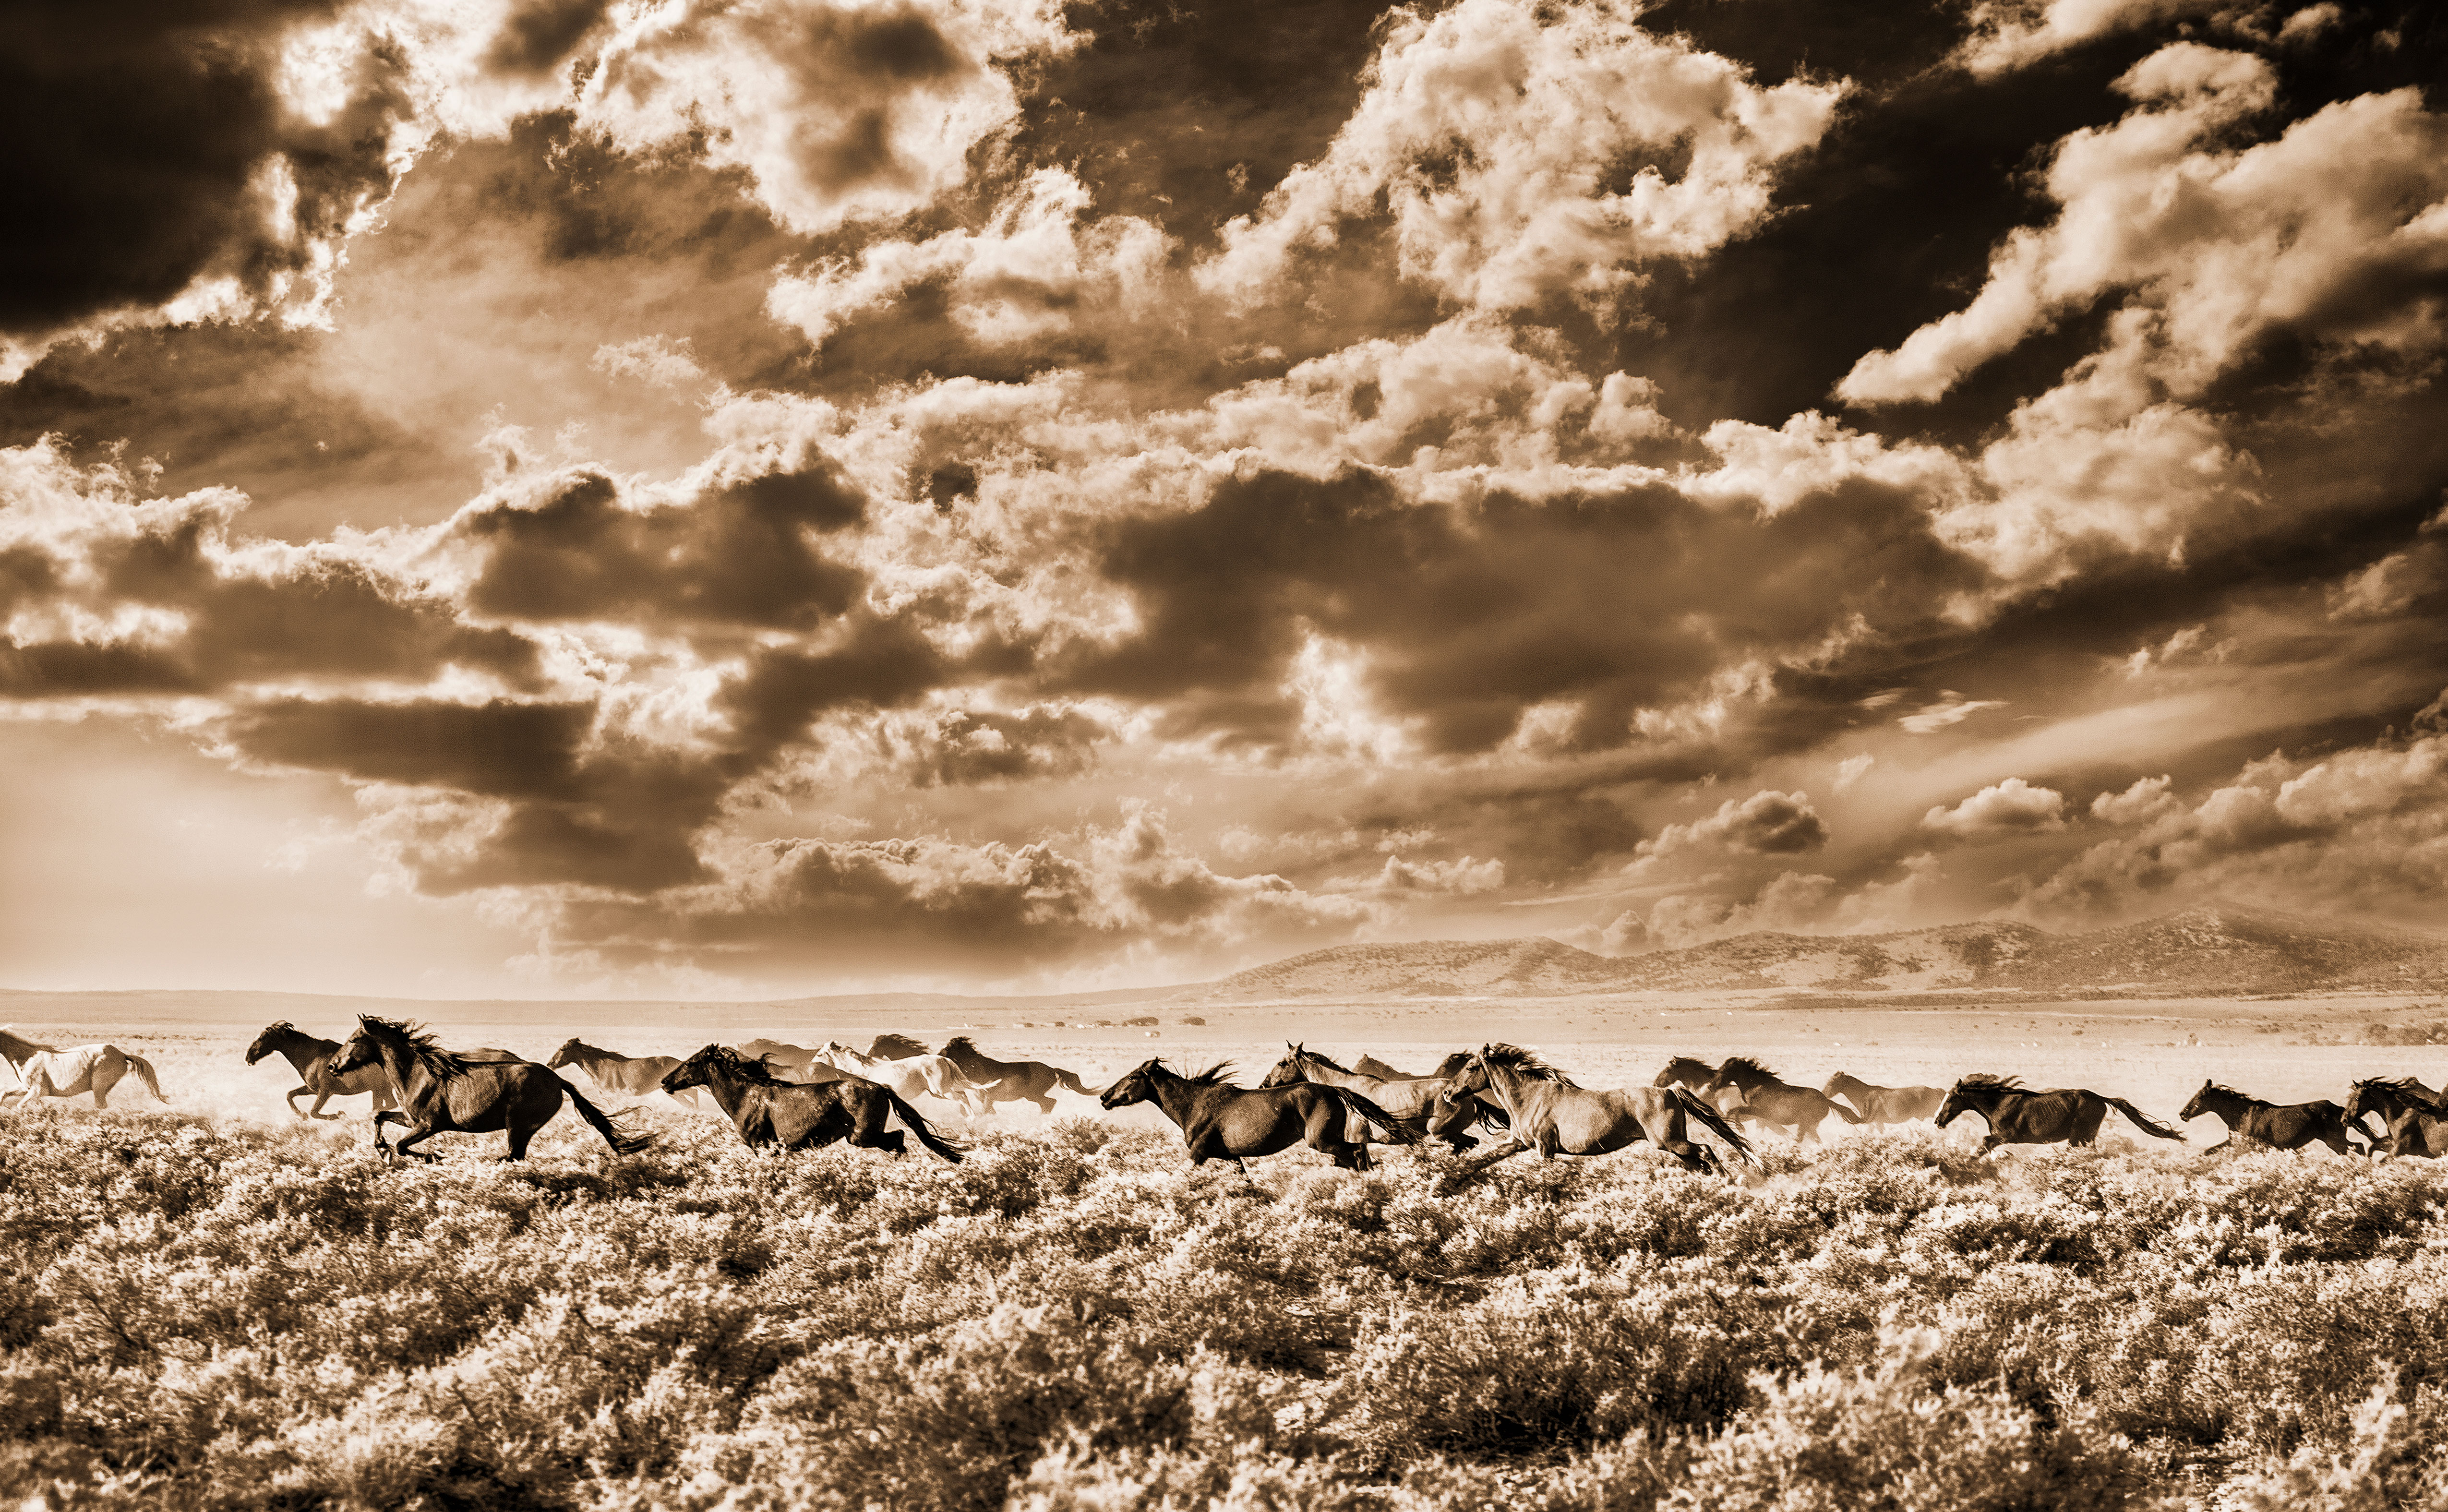 The Fight Over America's Wild Horses - Sunset Magazine